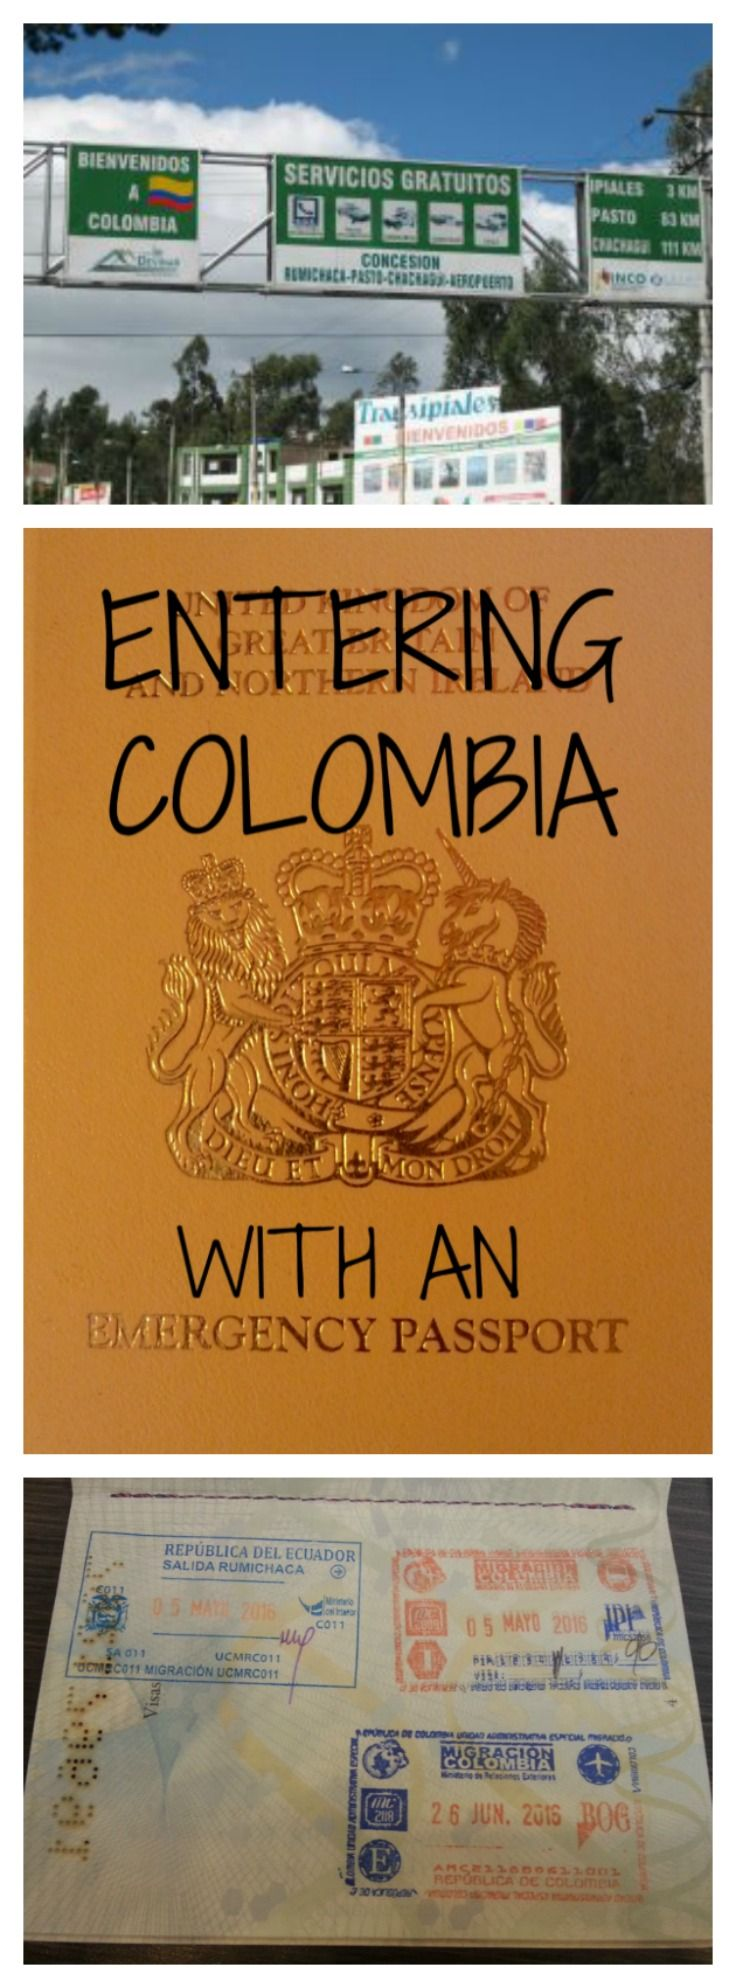 Travelling with an emergency passport is nervewracking!  Read how I entered Colombia with an emergency passport